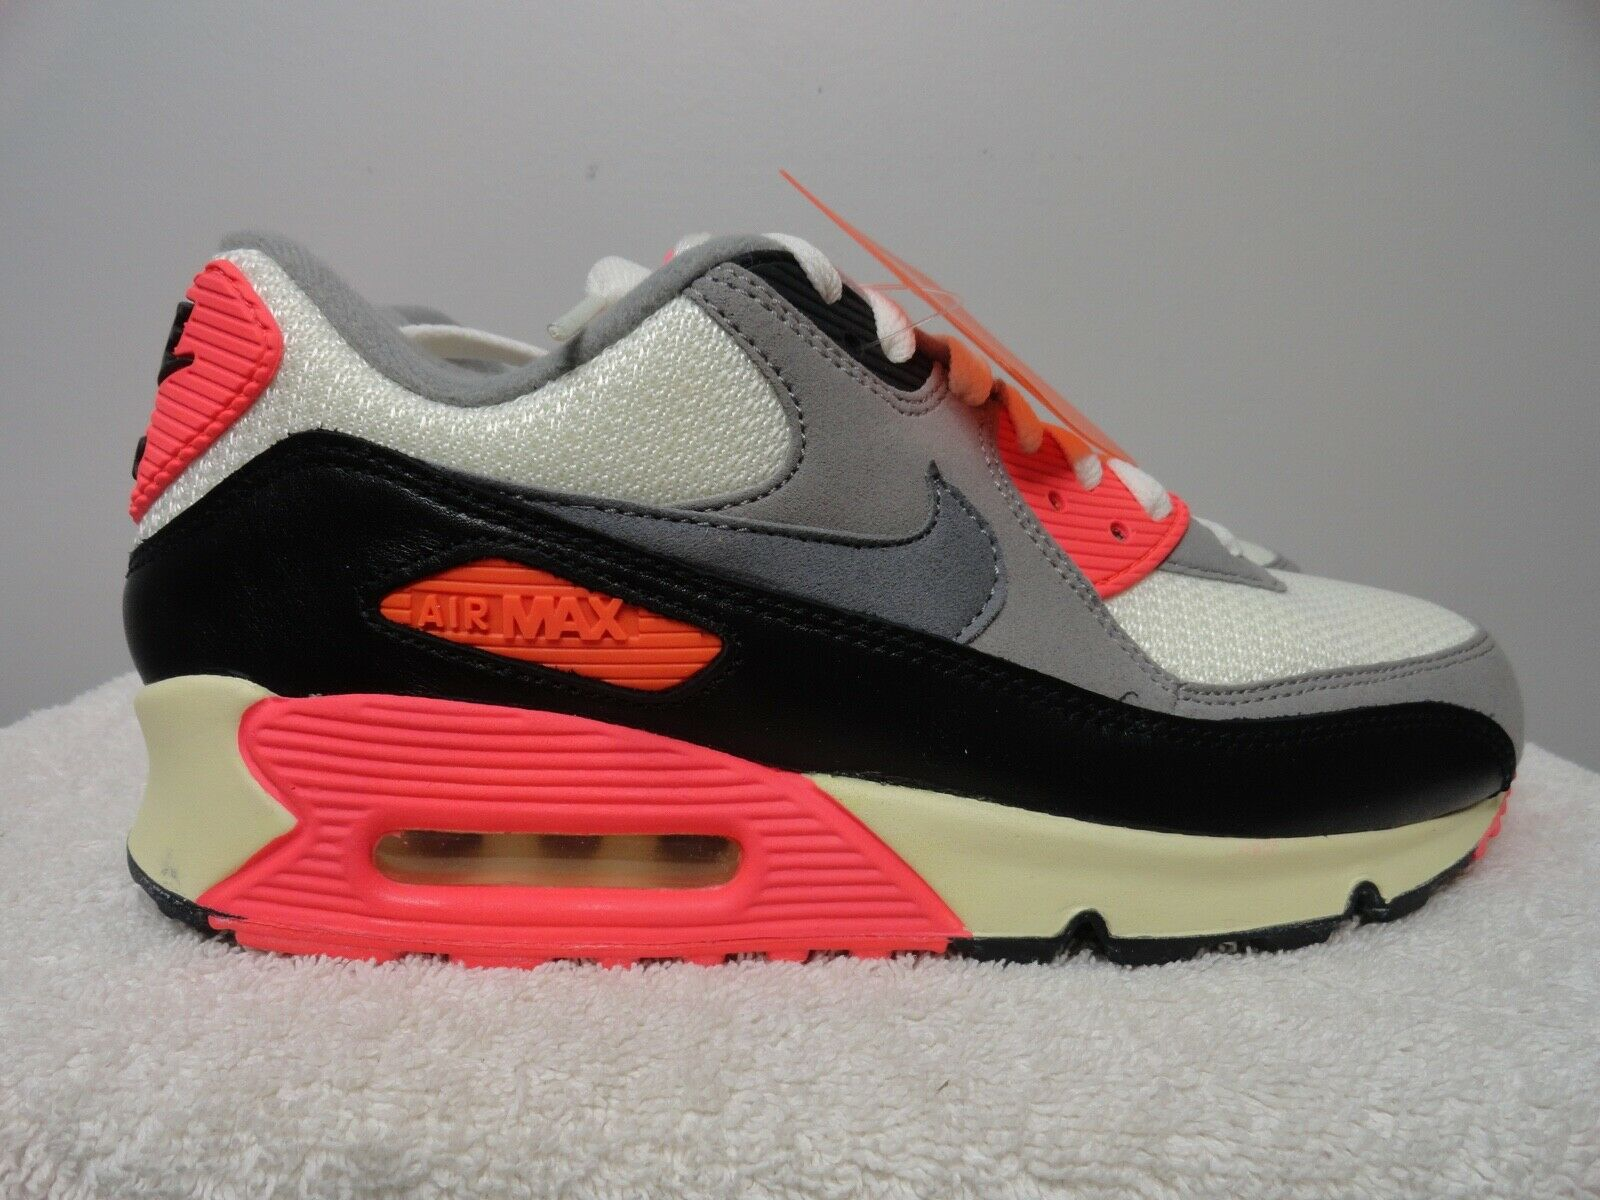 Nike air max 90 OG  release 2012 size 7  new in box